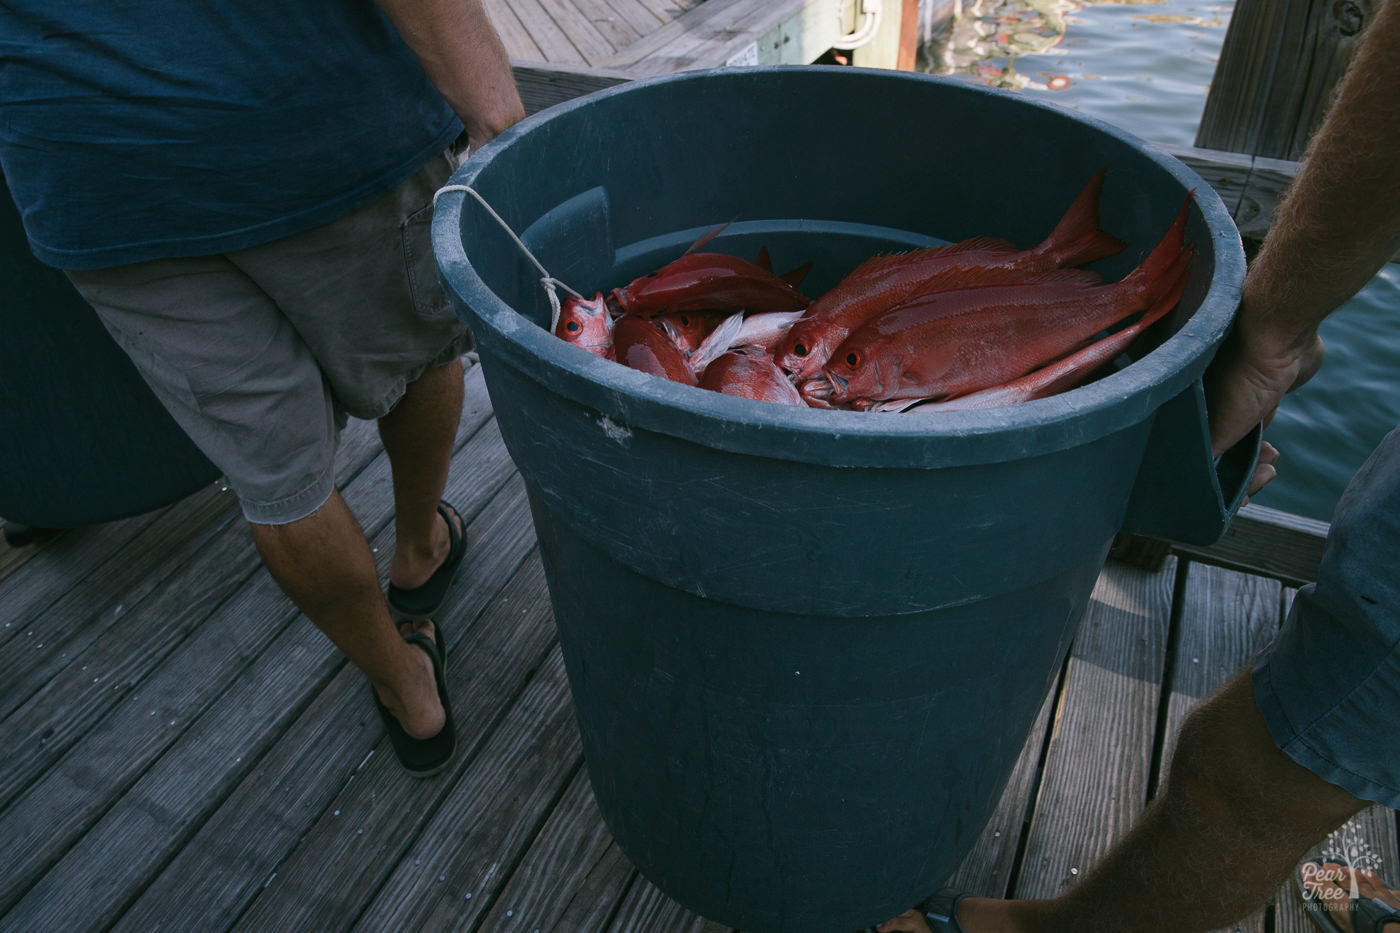 Humongous fishing bucket filled with red snapper being carried down the pier by two men.